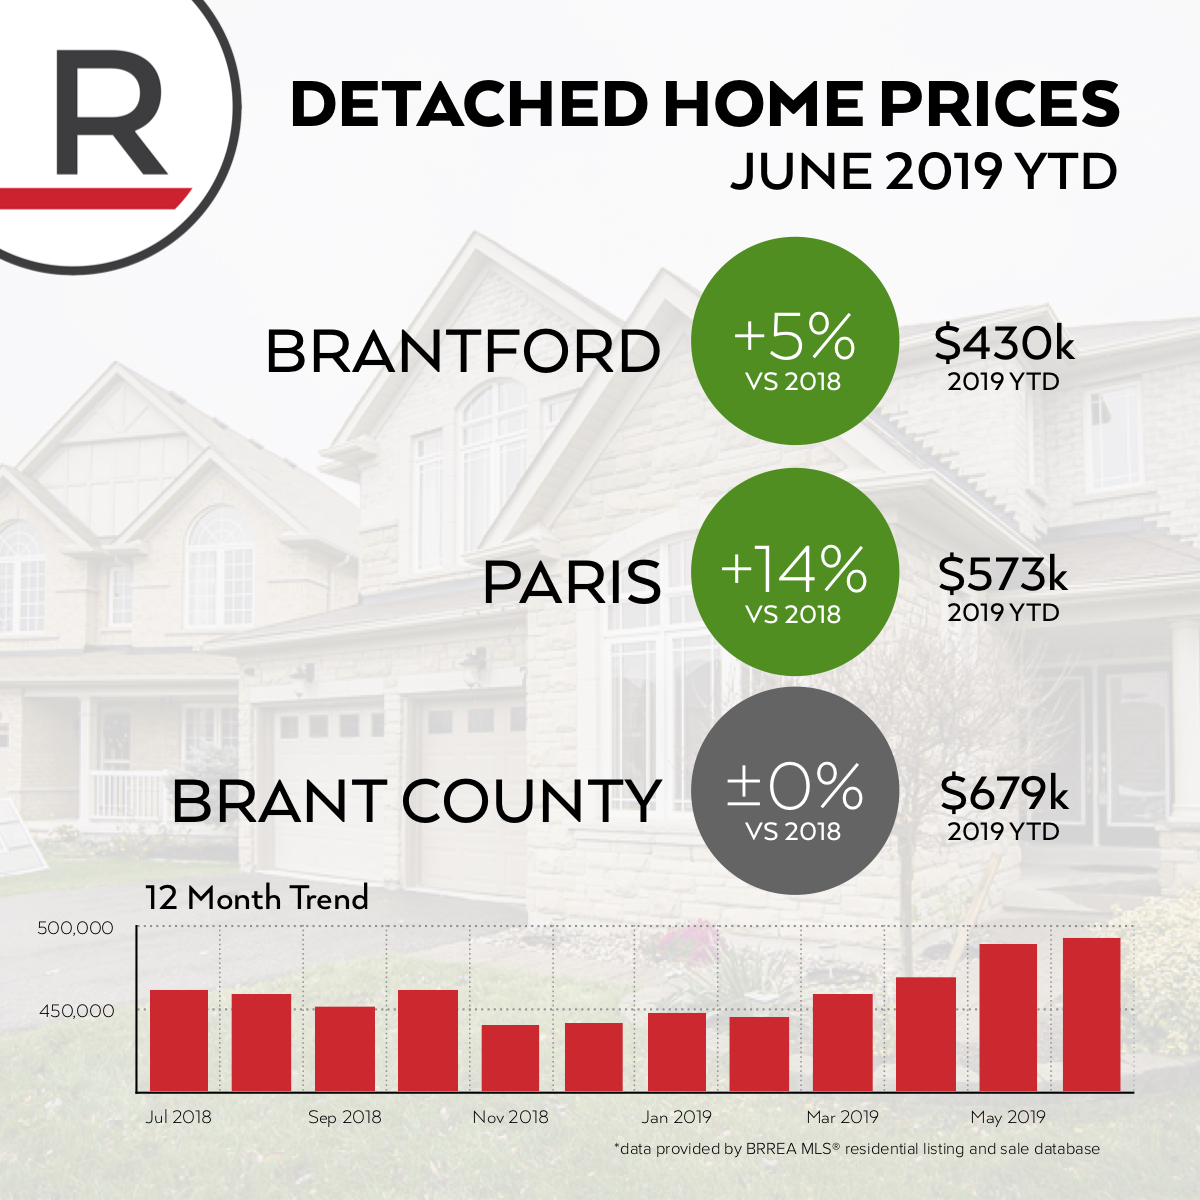 Home prices continue to climb. The average detached home in Brantford is up 5% year to date - now $430,000 while in Paris you'll need $573,000 for an average detached home - a gain of 14% since last year.